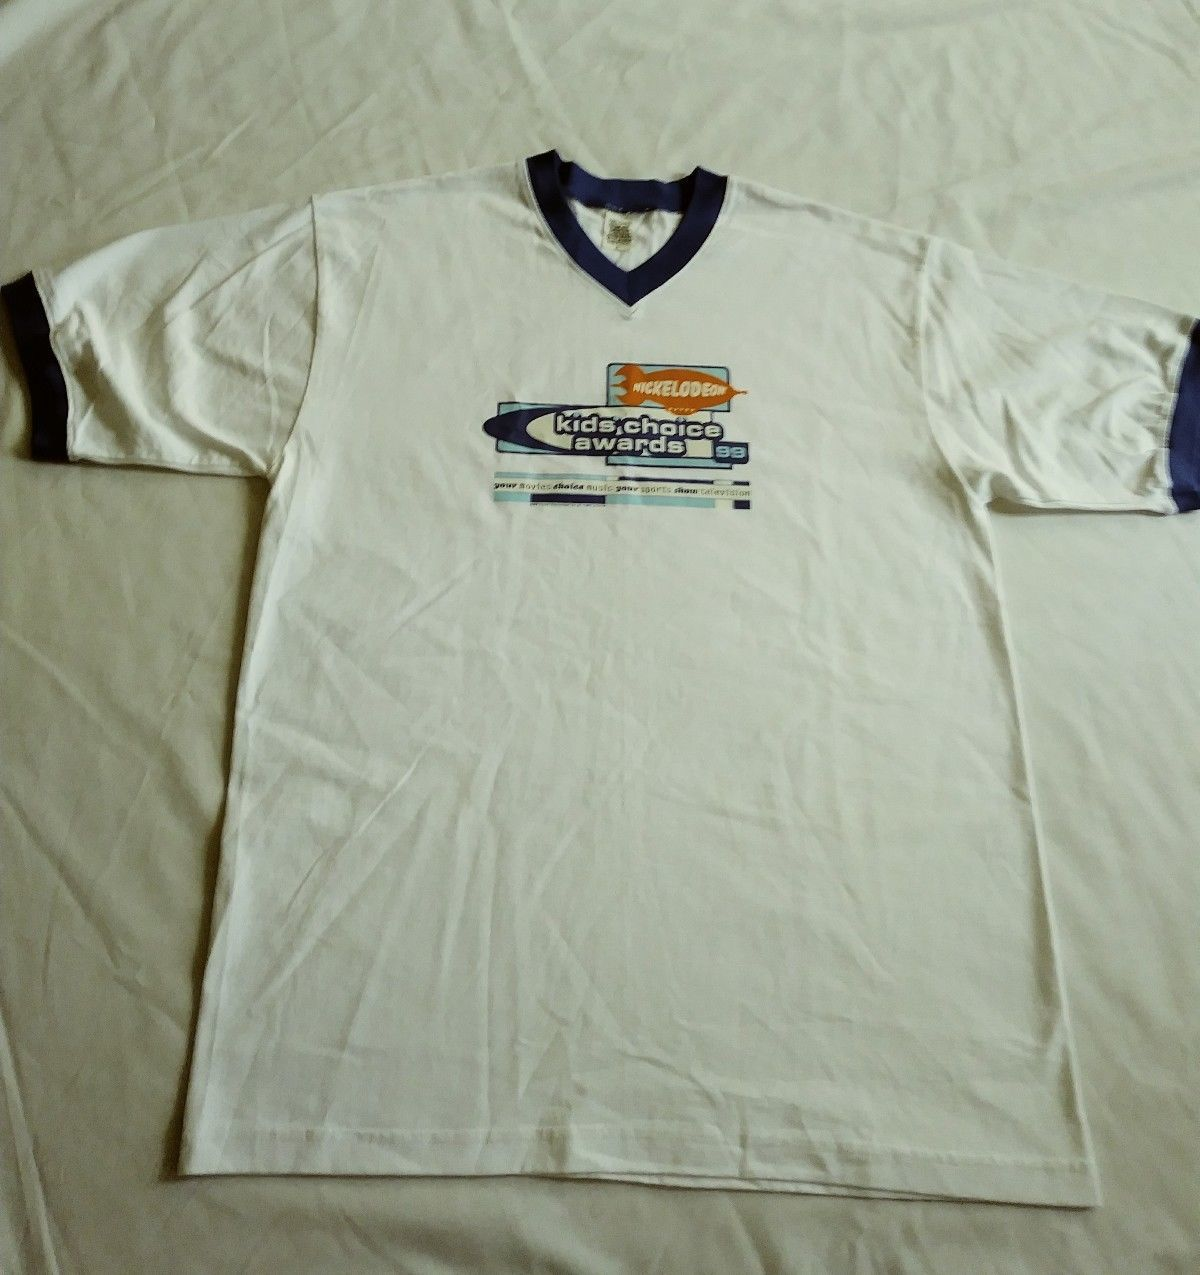 120369d2d Nickelodeon Kids Choice Awards 1999 White/ and 50 similar items